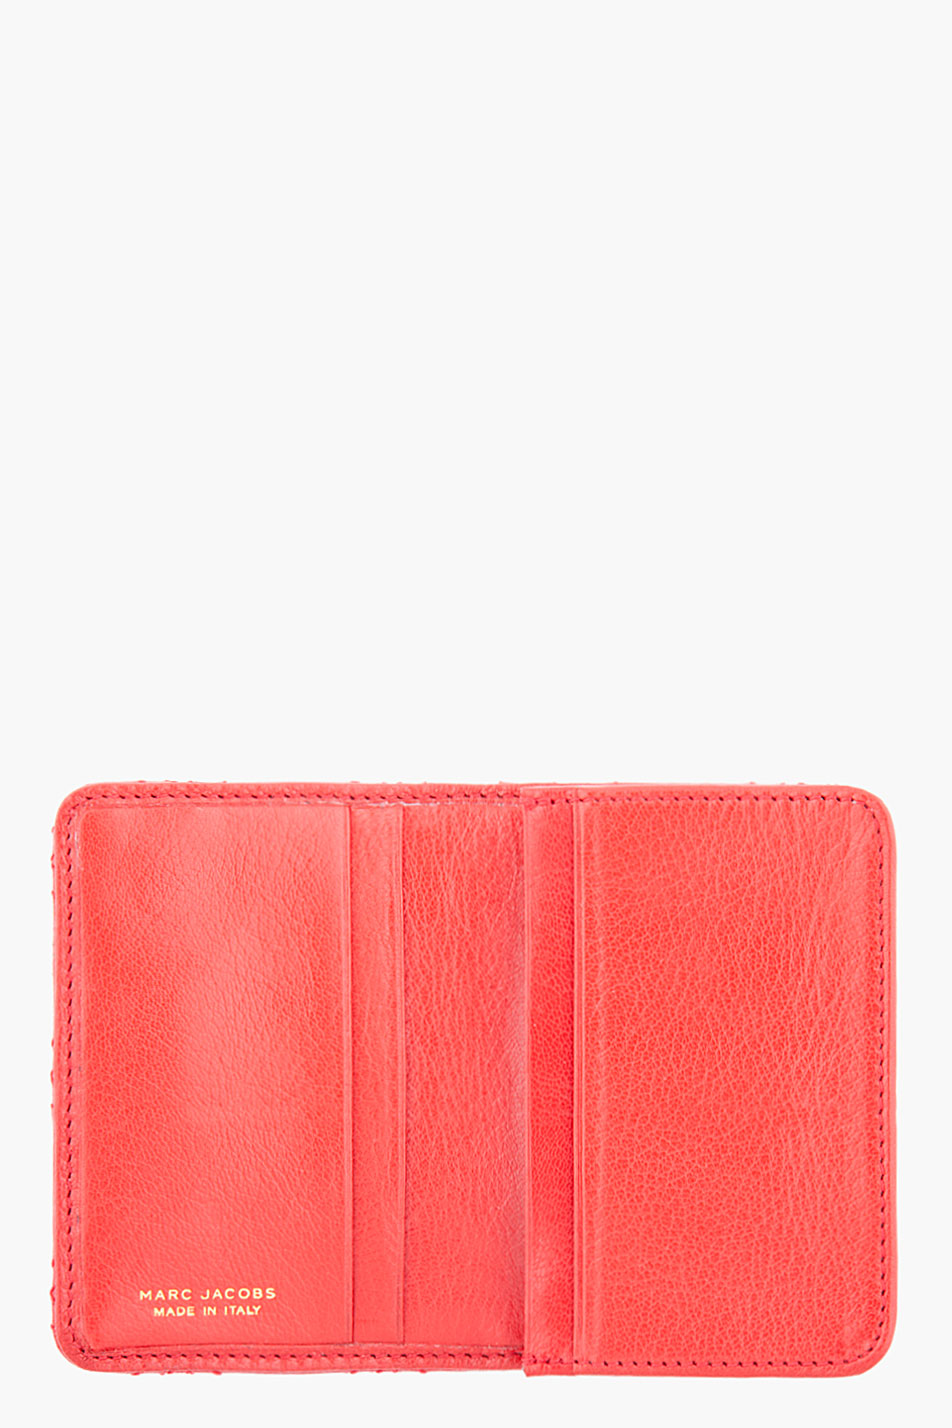 Lyst marc jacobs quilted red leather business card holder in red gallery colourmoves